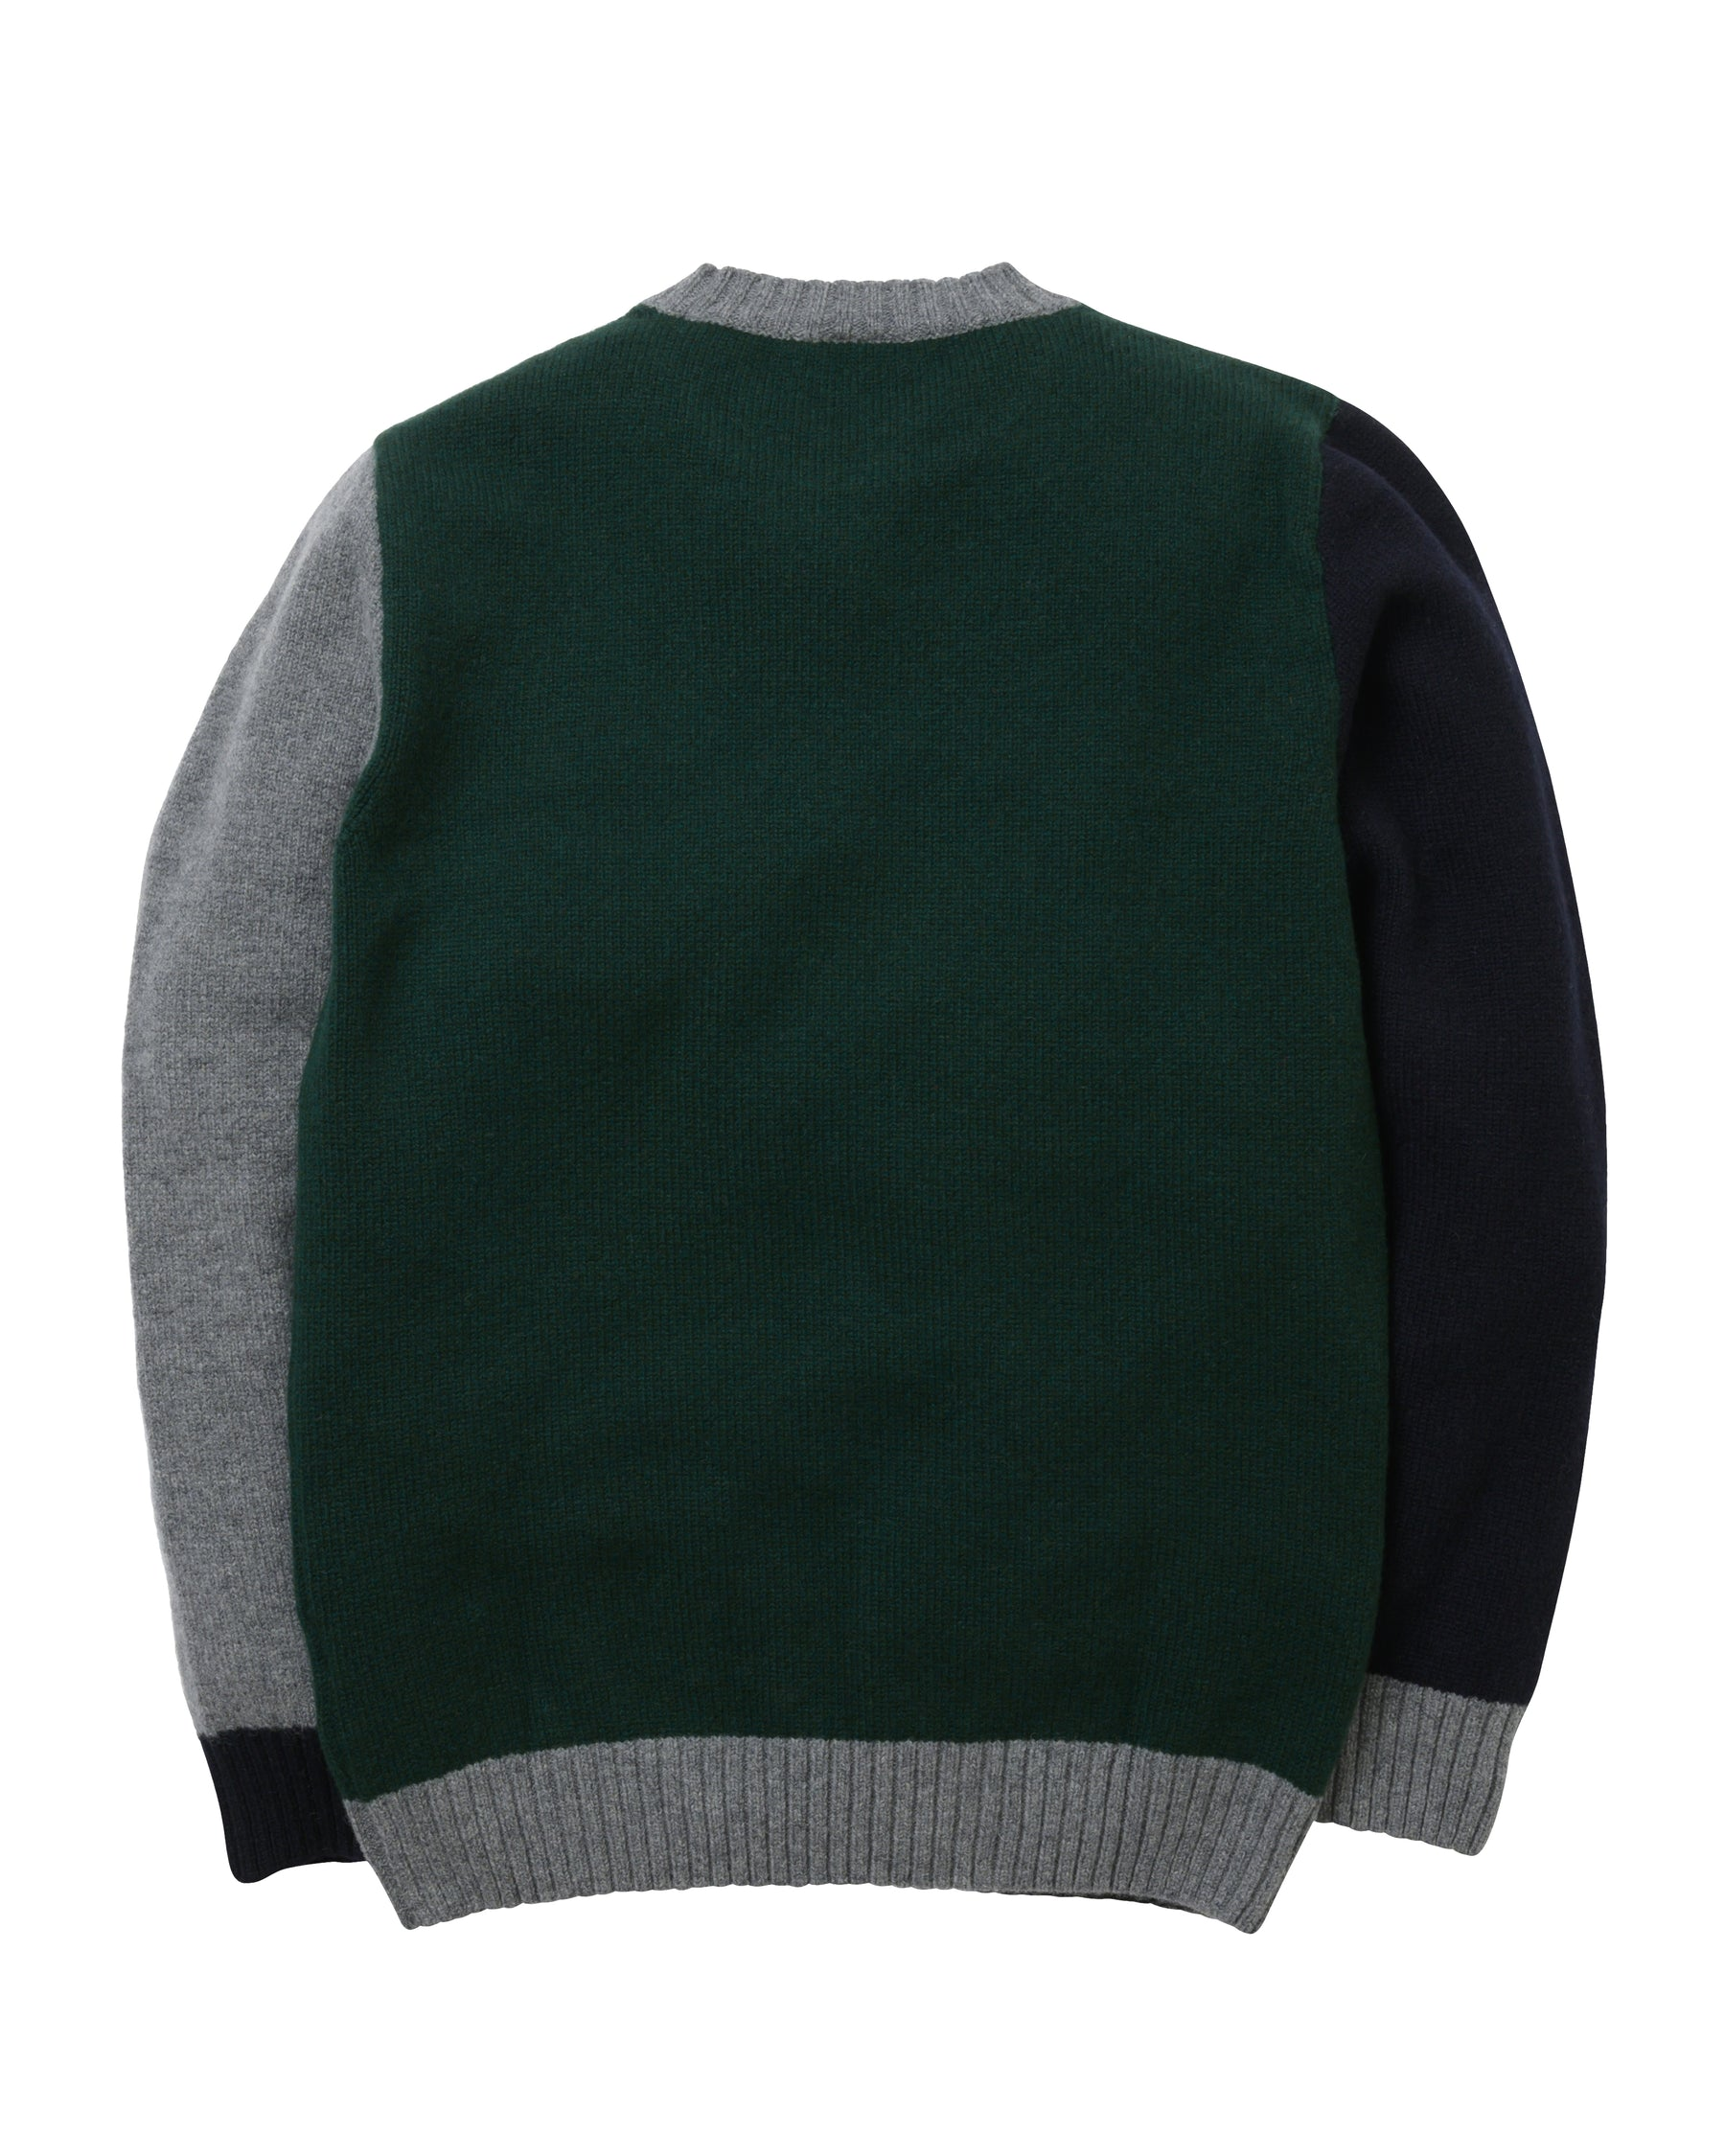 Tricolour Lambswool Crew • Green